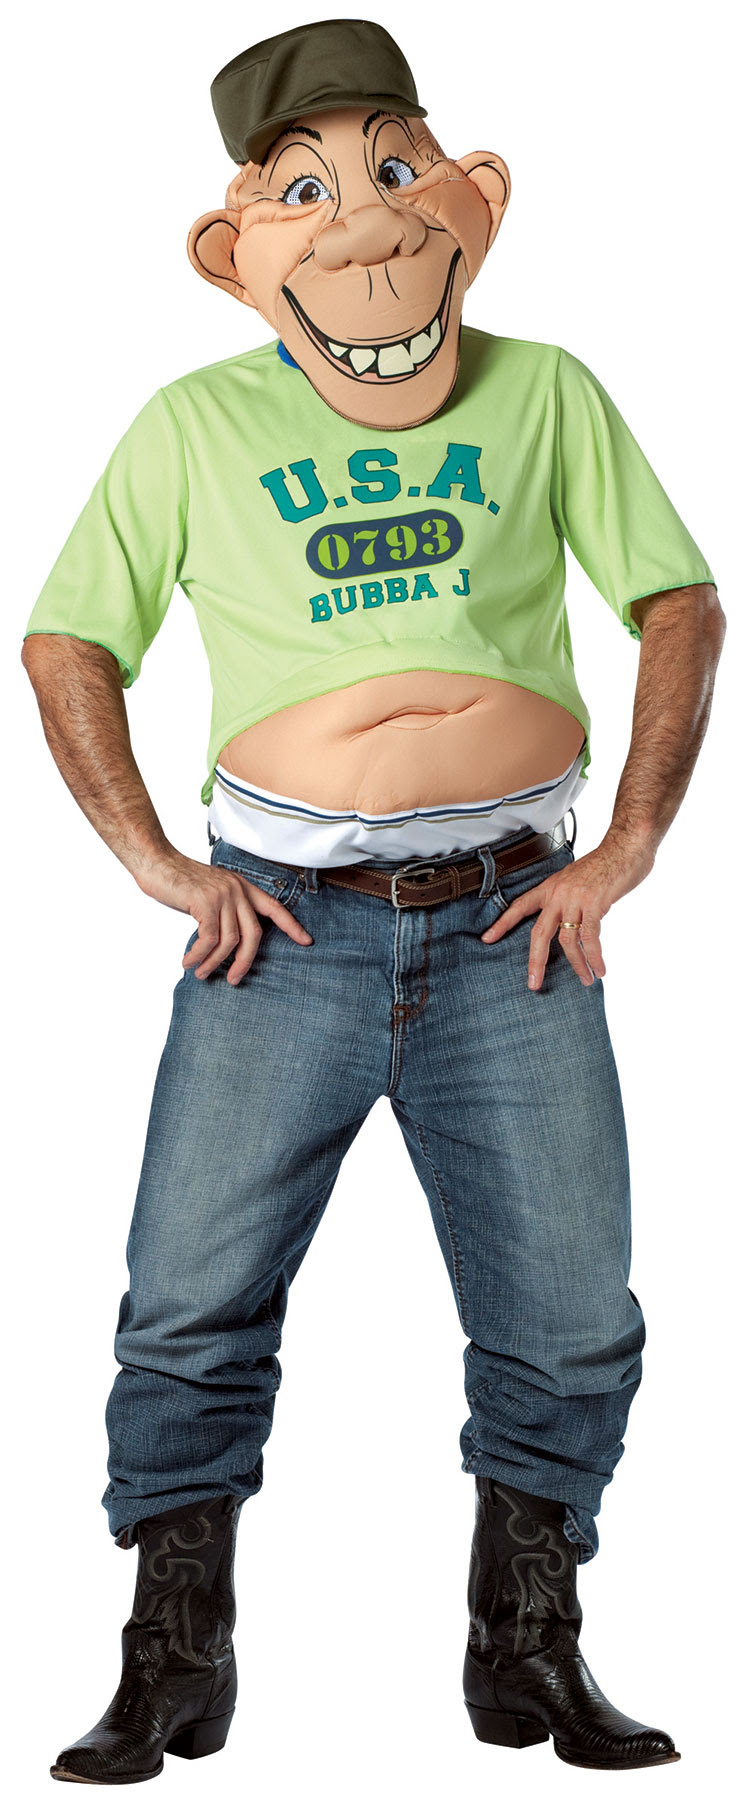 1383559904 4322 Jeff Dunham Bubba J Costume large